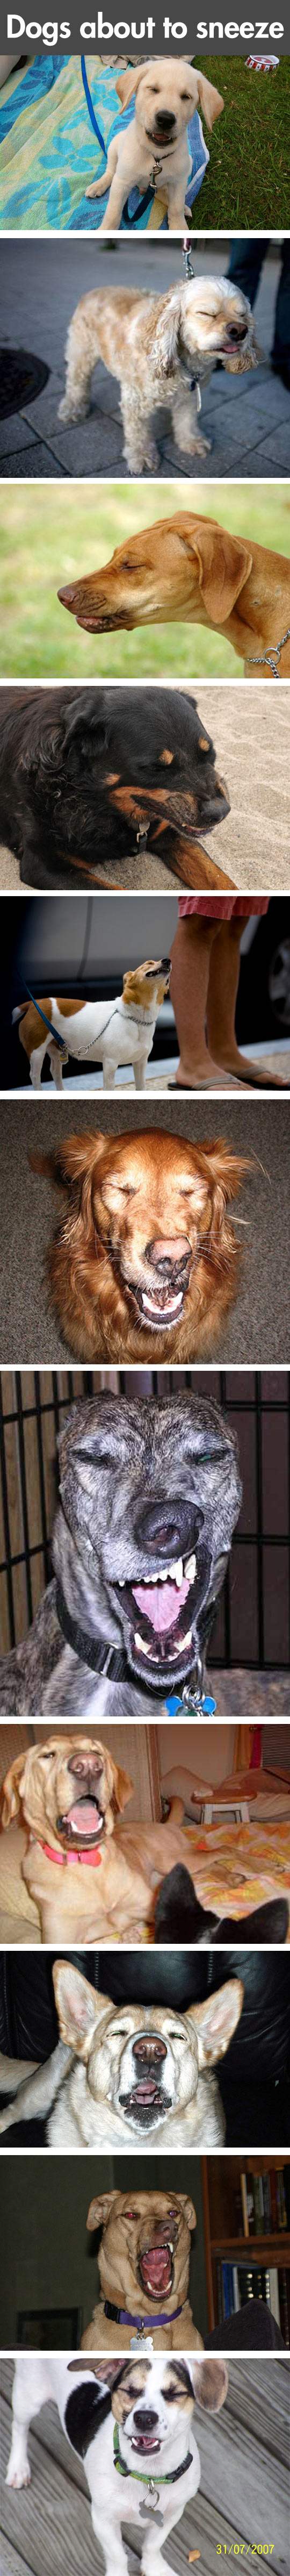 Funny Pictures Of Dogs Taken Right Before They Sneeze.